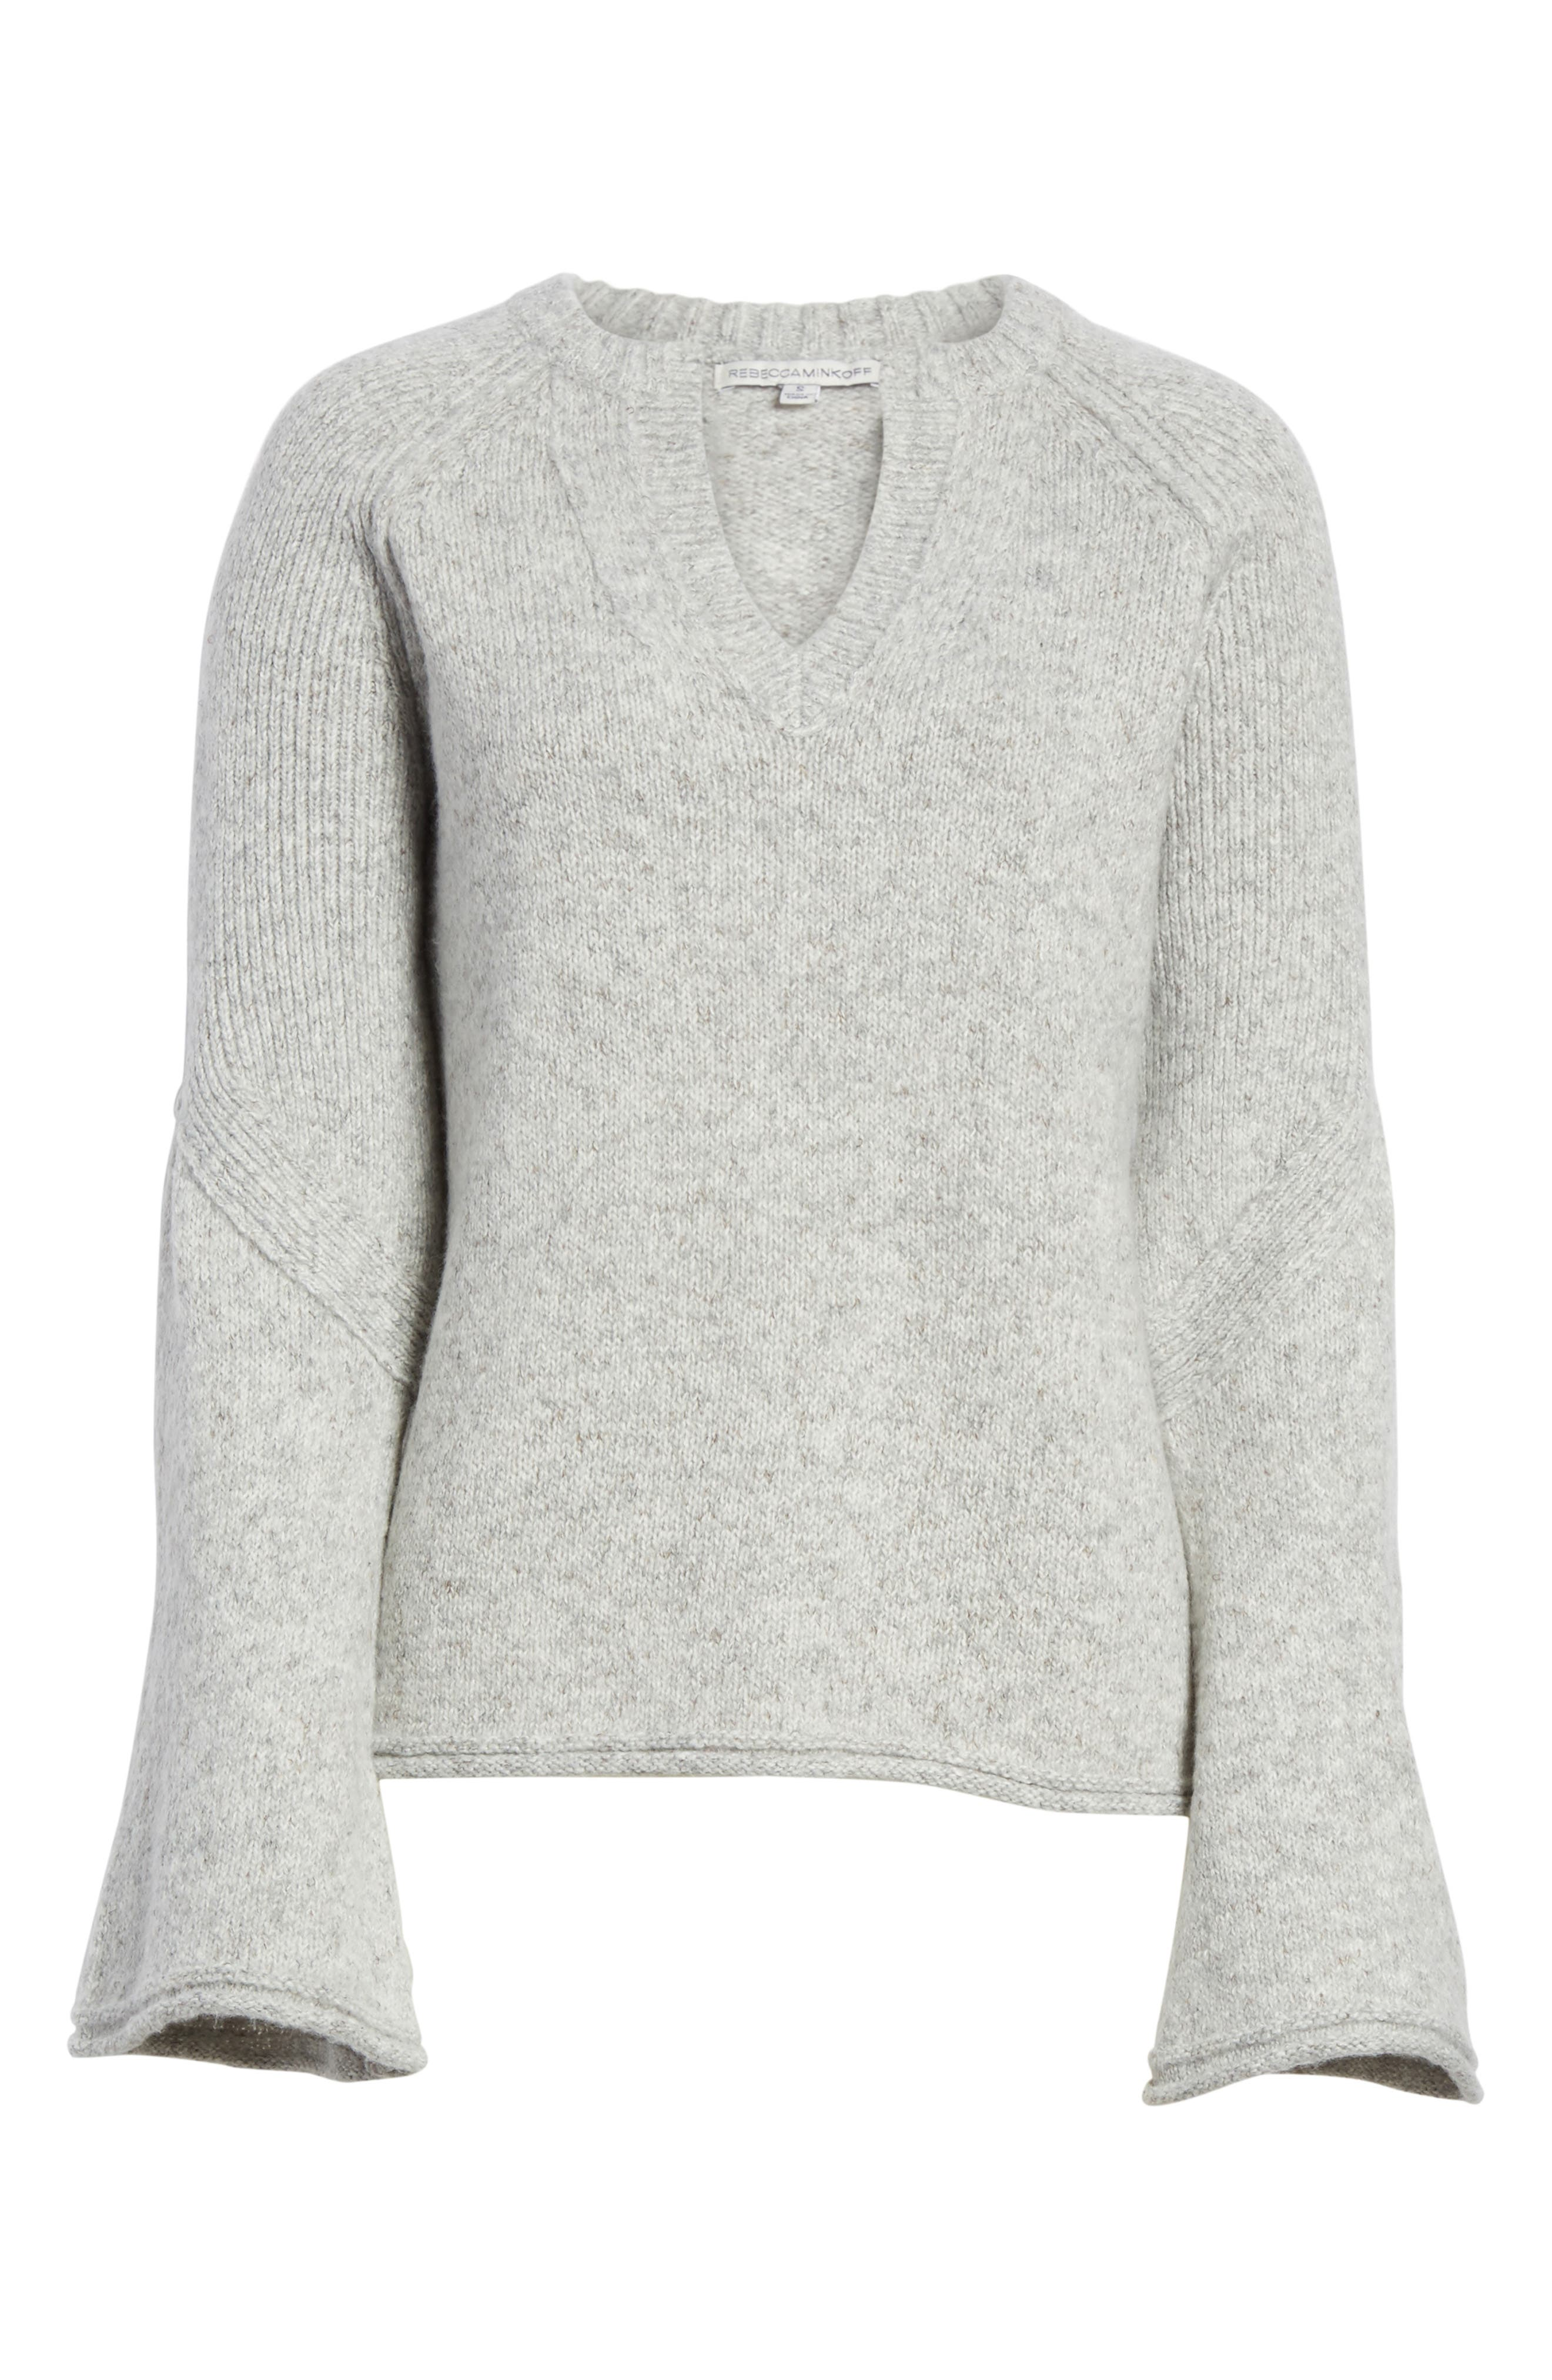 Griffyn Sweater,                             Alternate thumbnail 6, color,                             026